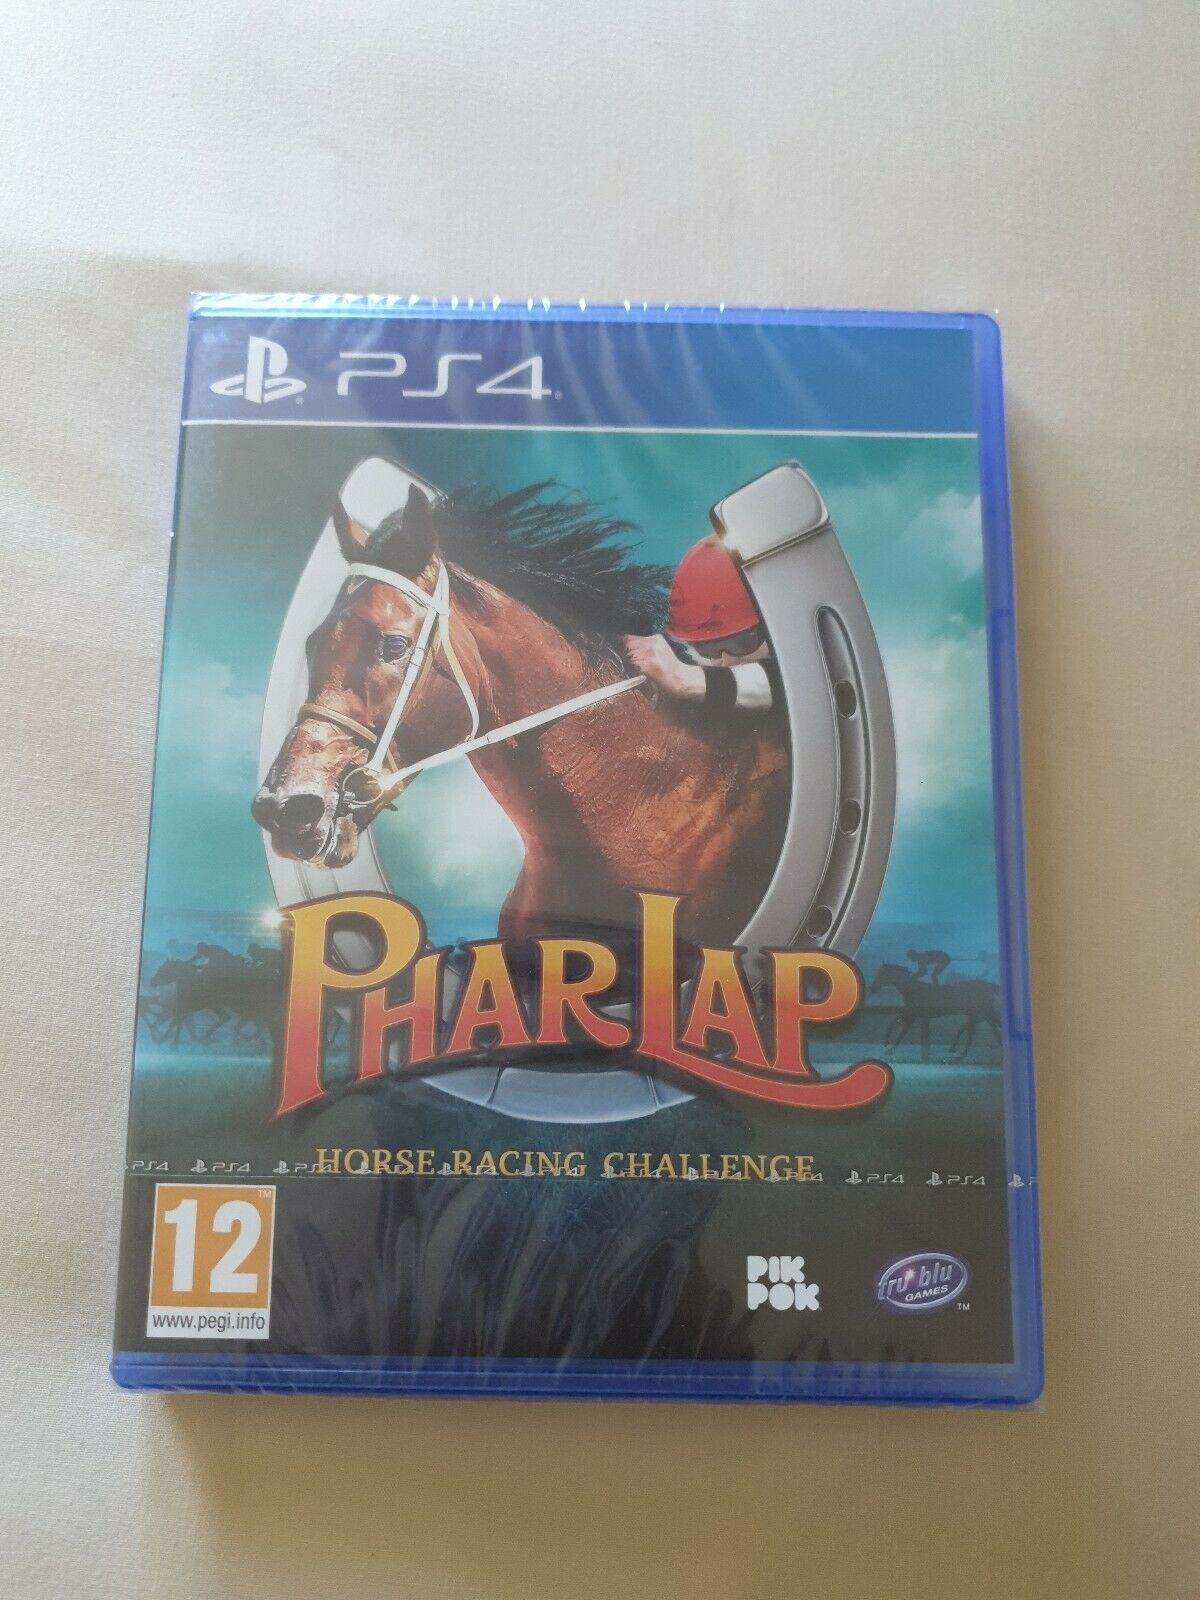 Phar Lap Horse Racing Challenge Ps4 Game For Sale Online Ebay